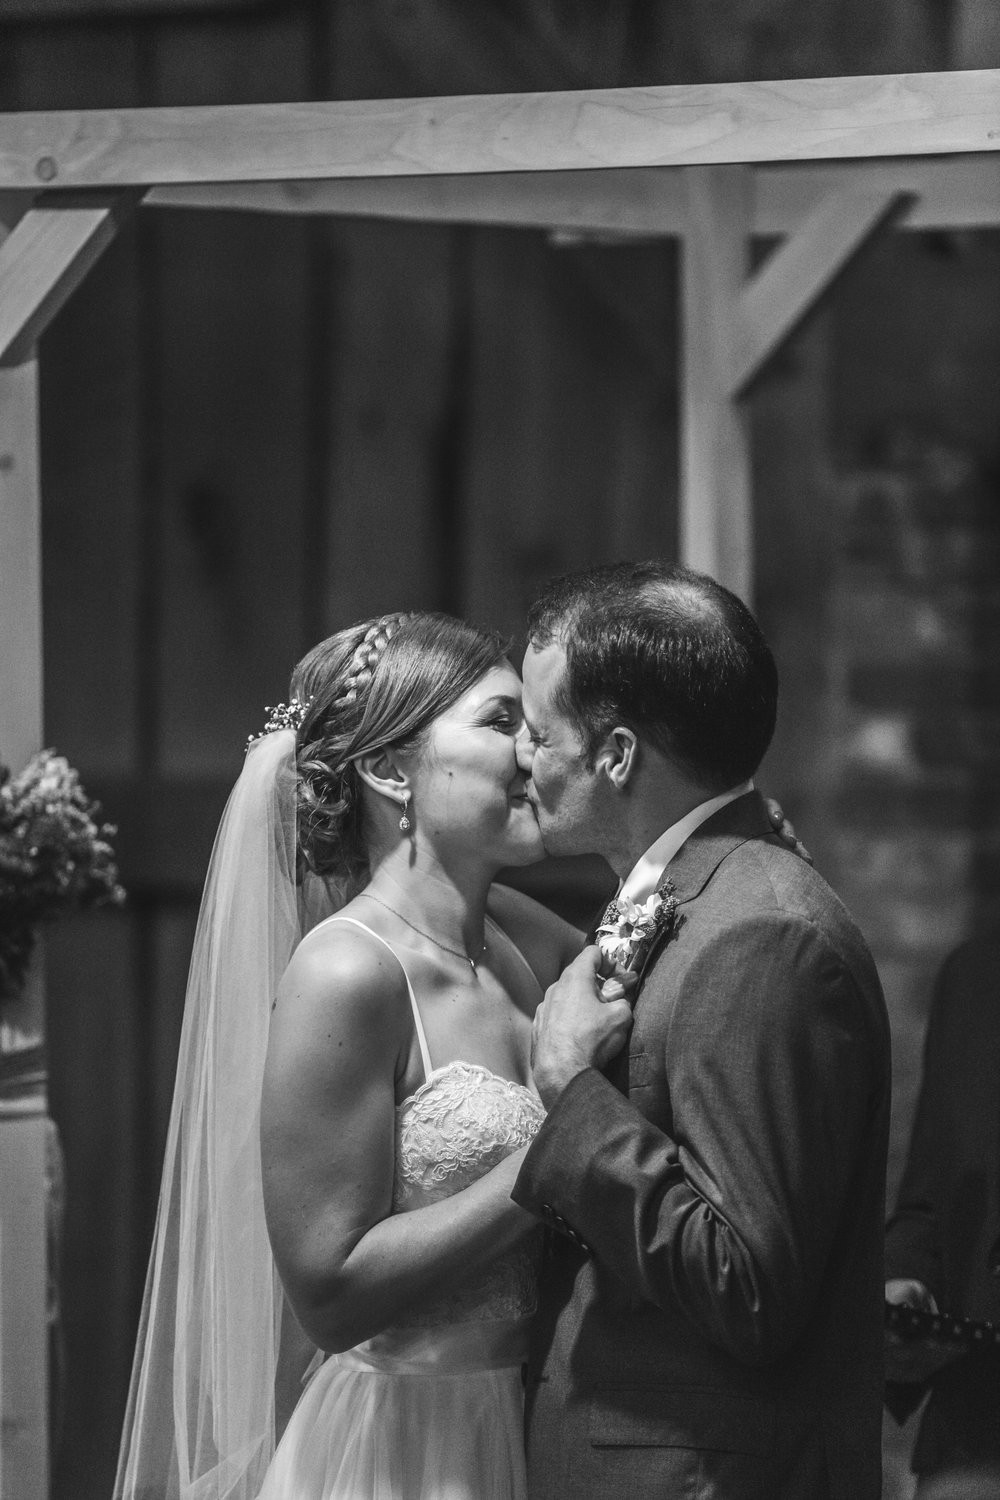 Black and White photo of Bride and Groom kissing after their wedding ceremony in their rustic barn wedding at Waterloo Village